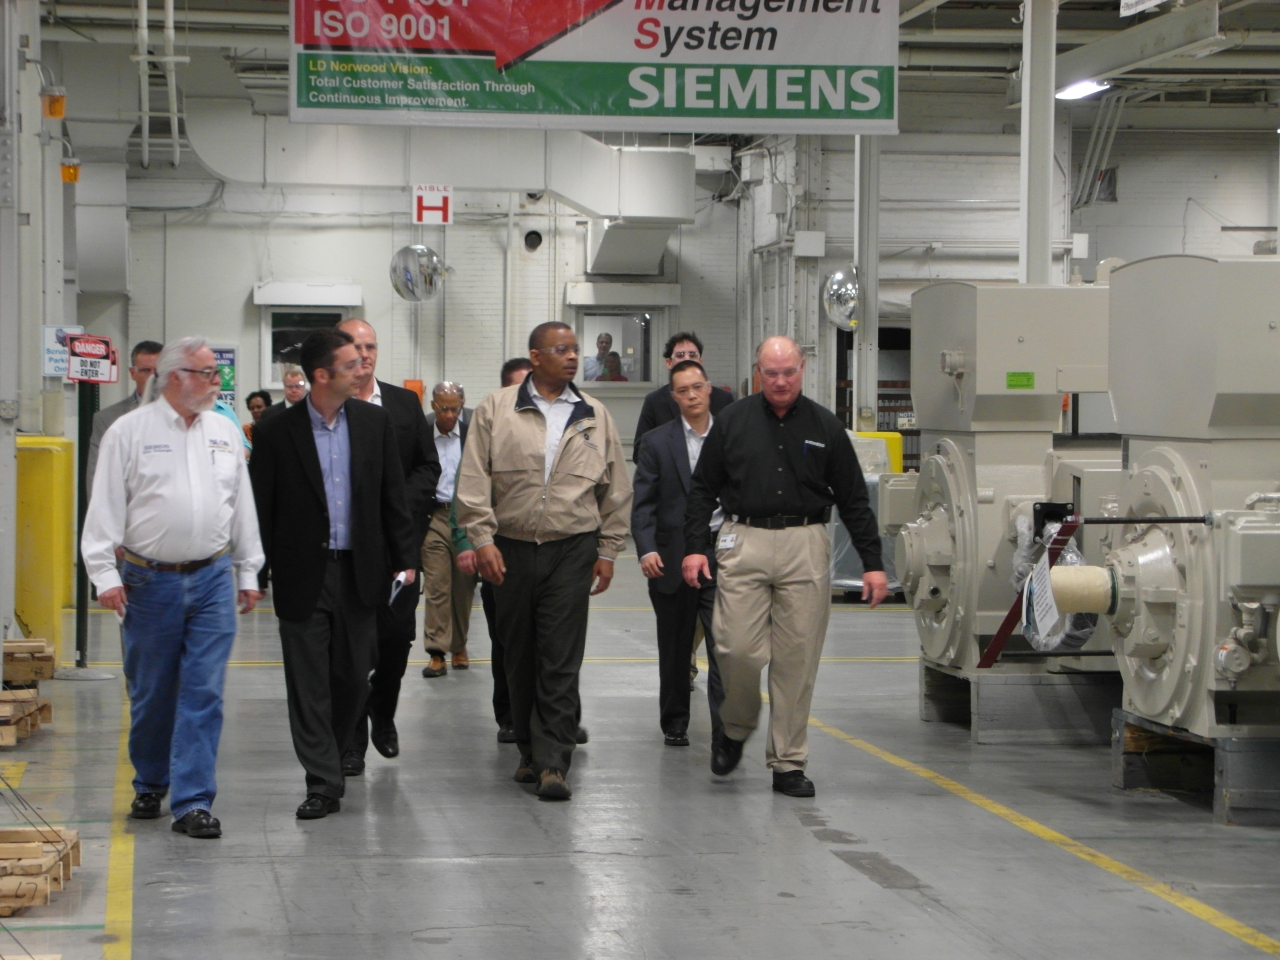 Secretary Foxx taking a tour of Siemens' Norwood Motors Manufacturing Facility